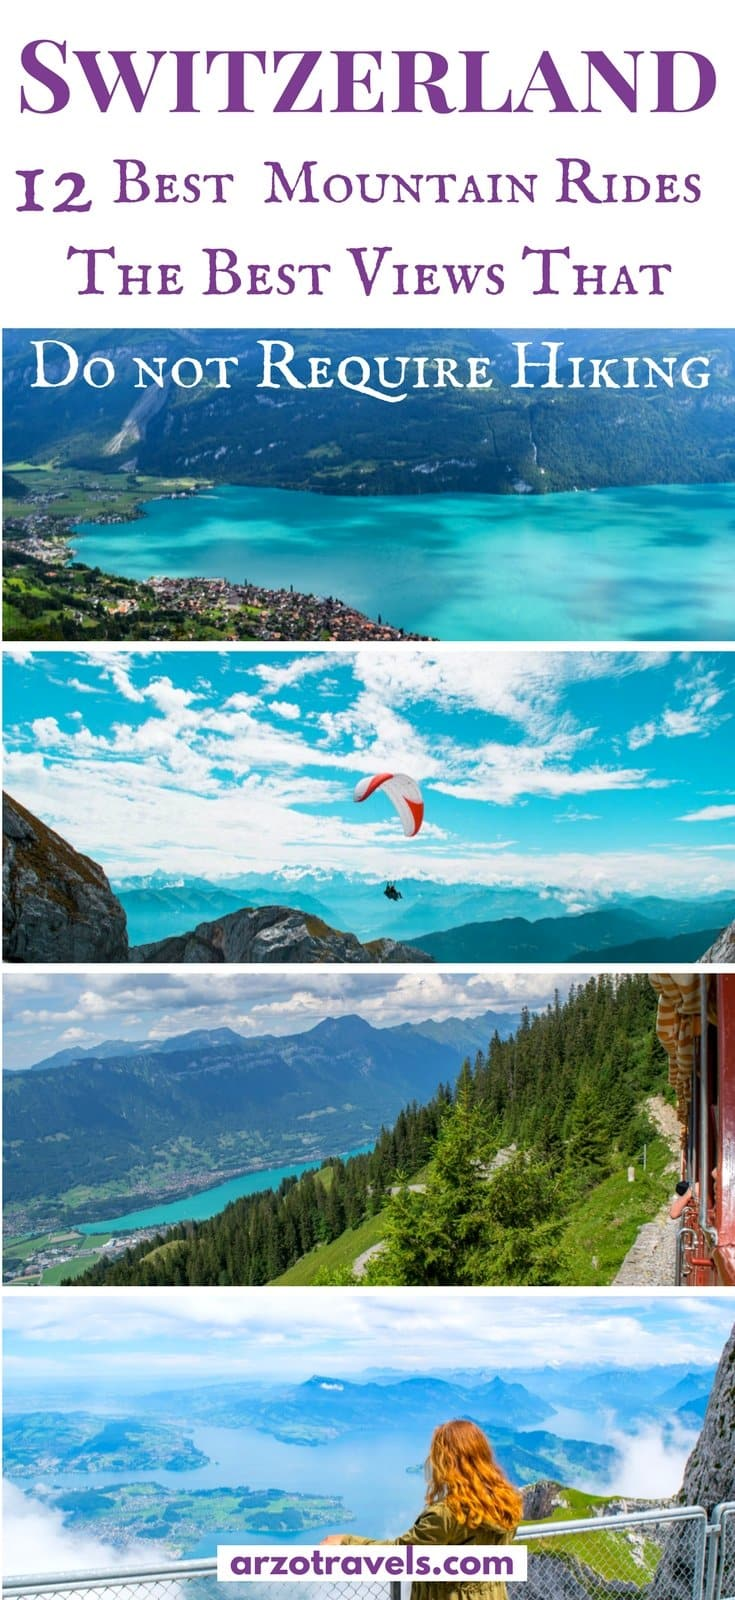 If you are not a fan of difficult hikes but do not want to miss out on amazing mountain views you will find top mountain rides which offer the best views - without any hiking in Switzerland.